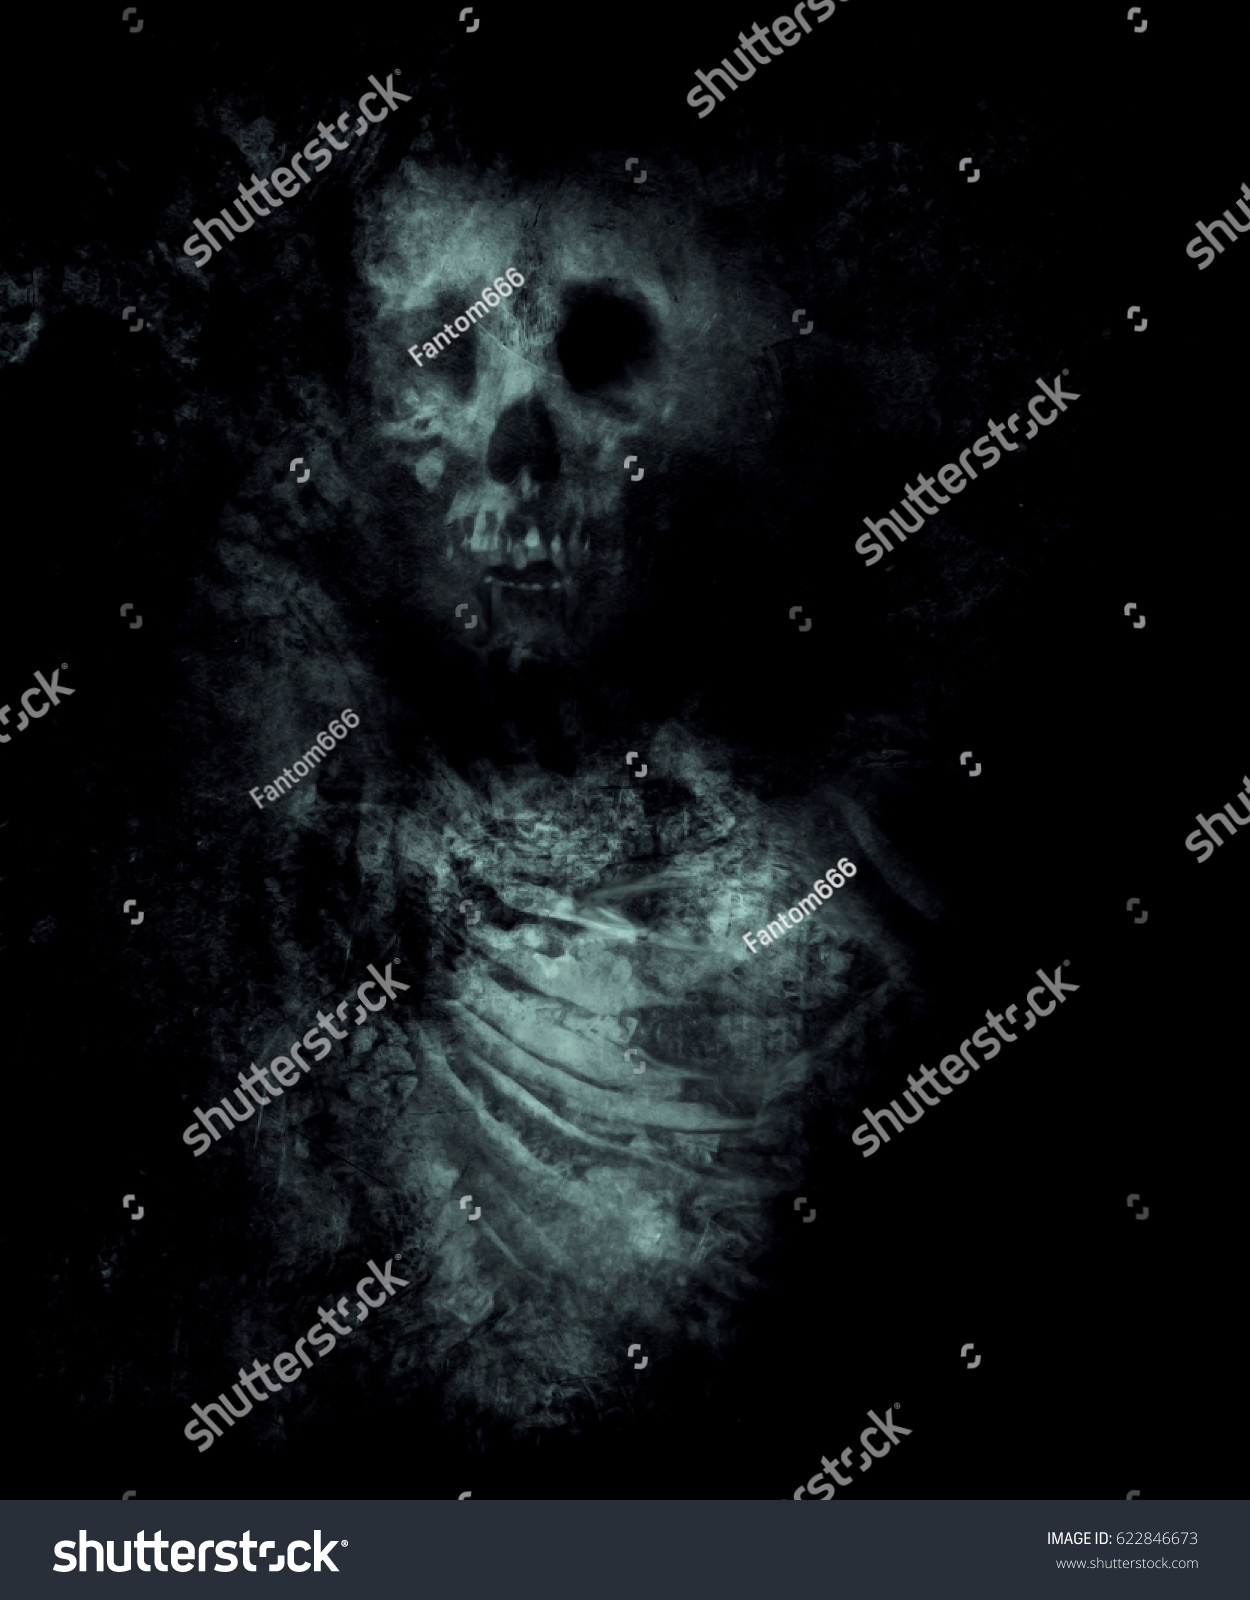 Wonderful Wallpaper Halloween Grunge - stock-photo-scary-halloween-grunge-wallpaper-with-spooky-skull-horror-background-design-for-t-shirt-print-622846673  Pictures_232278.jpg